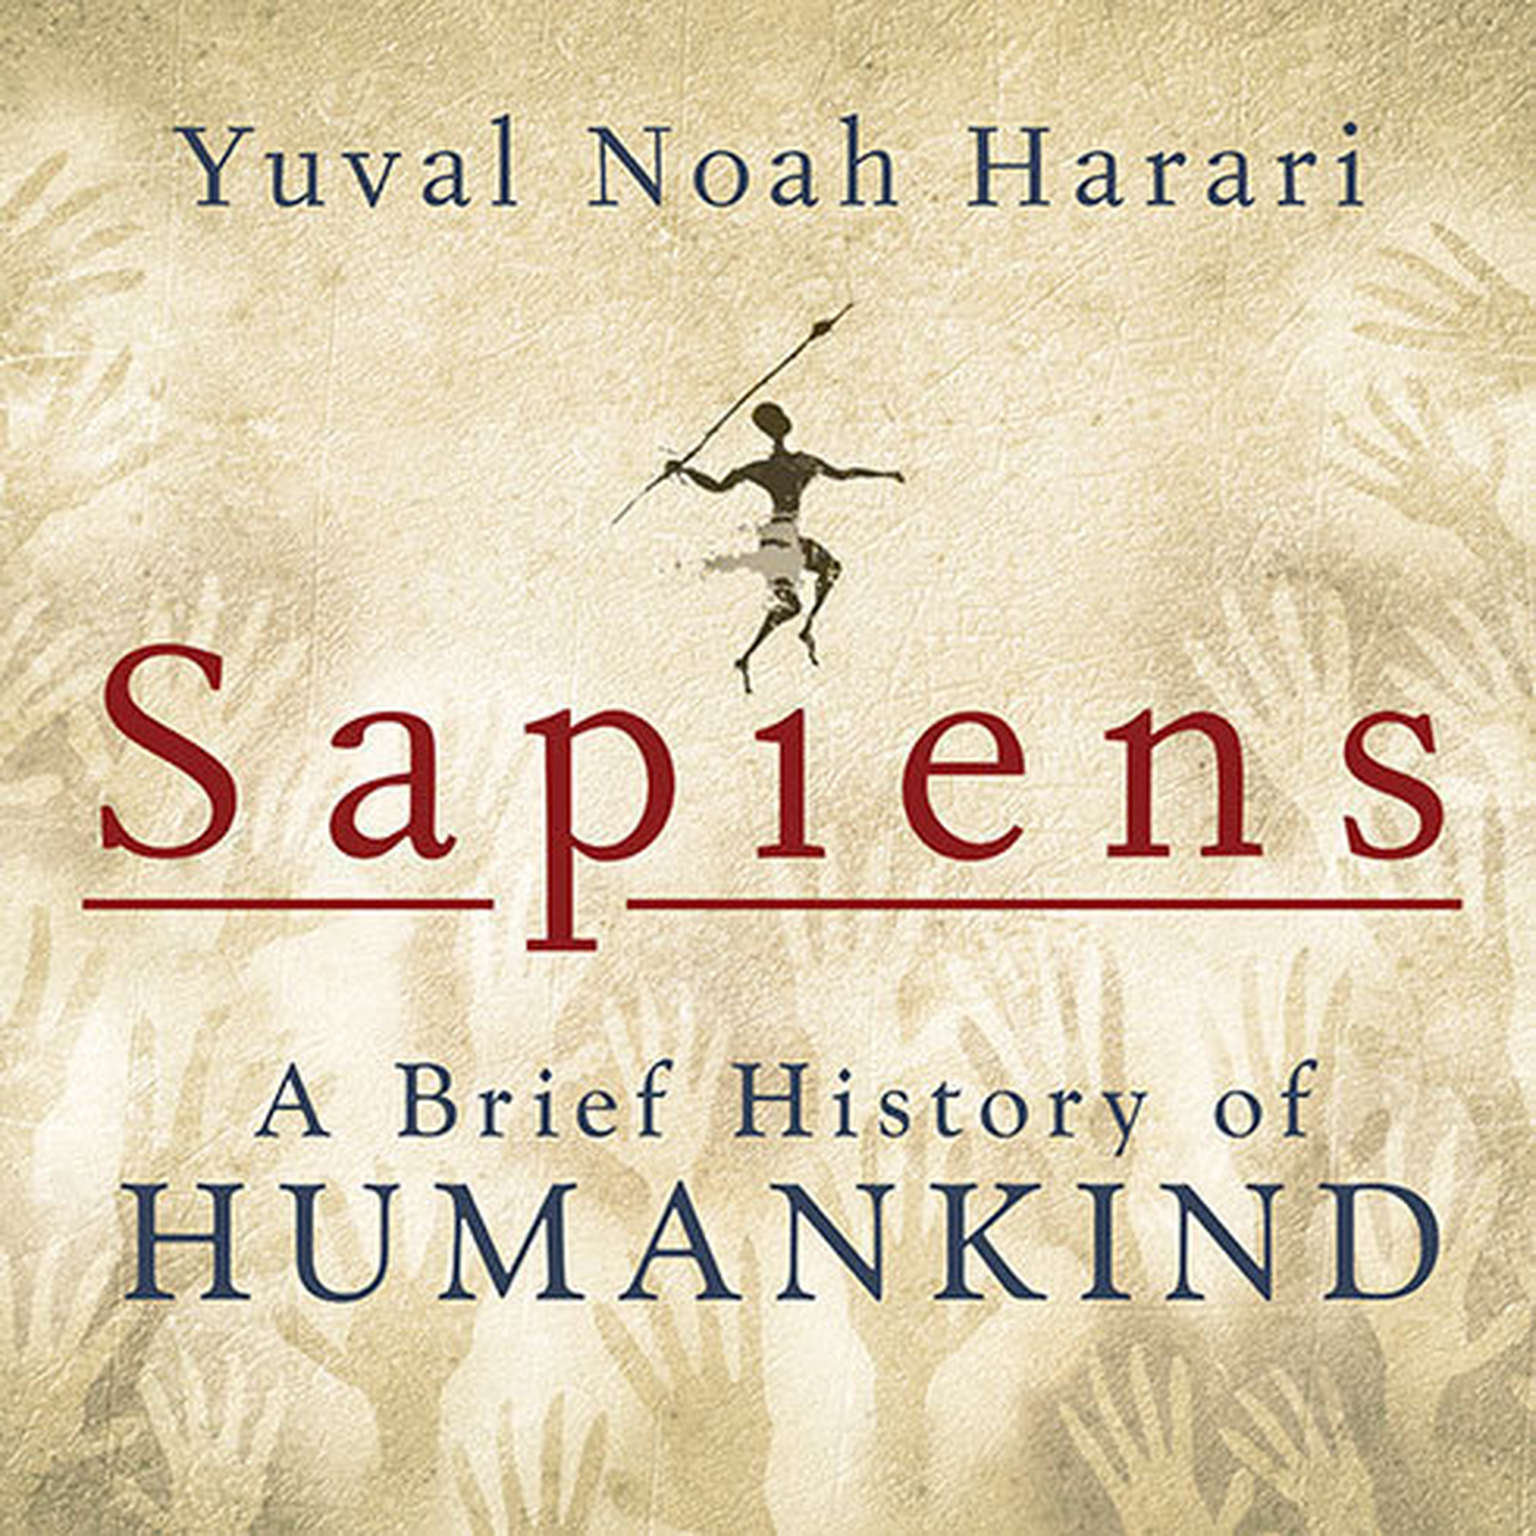 Download Sapiens Audiobook By Yuval Noah Harari For Just 5 95